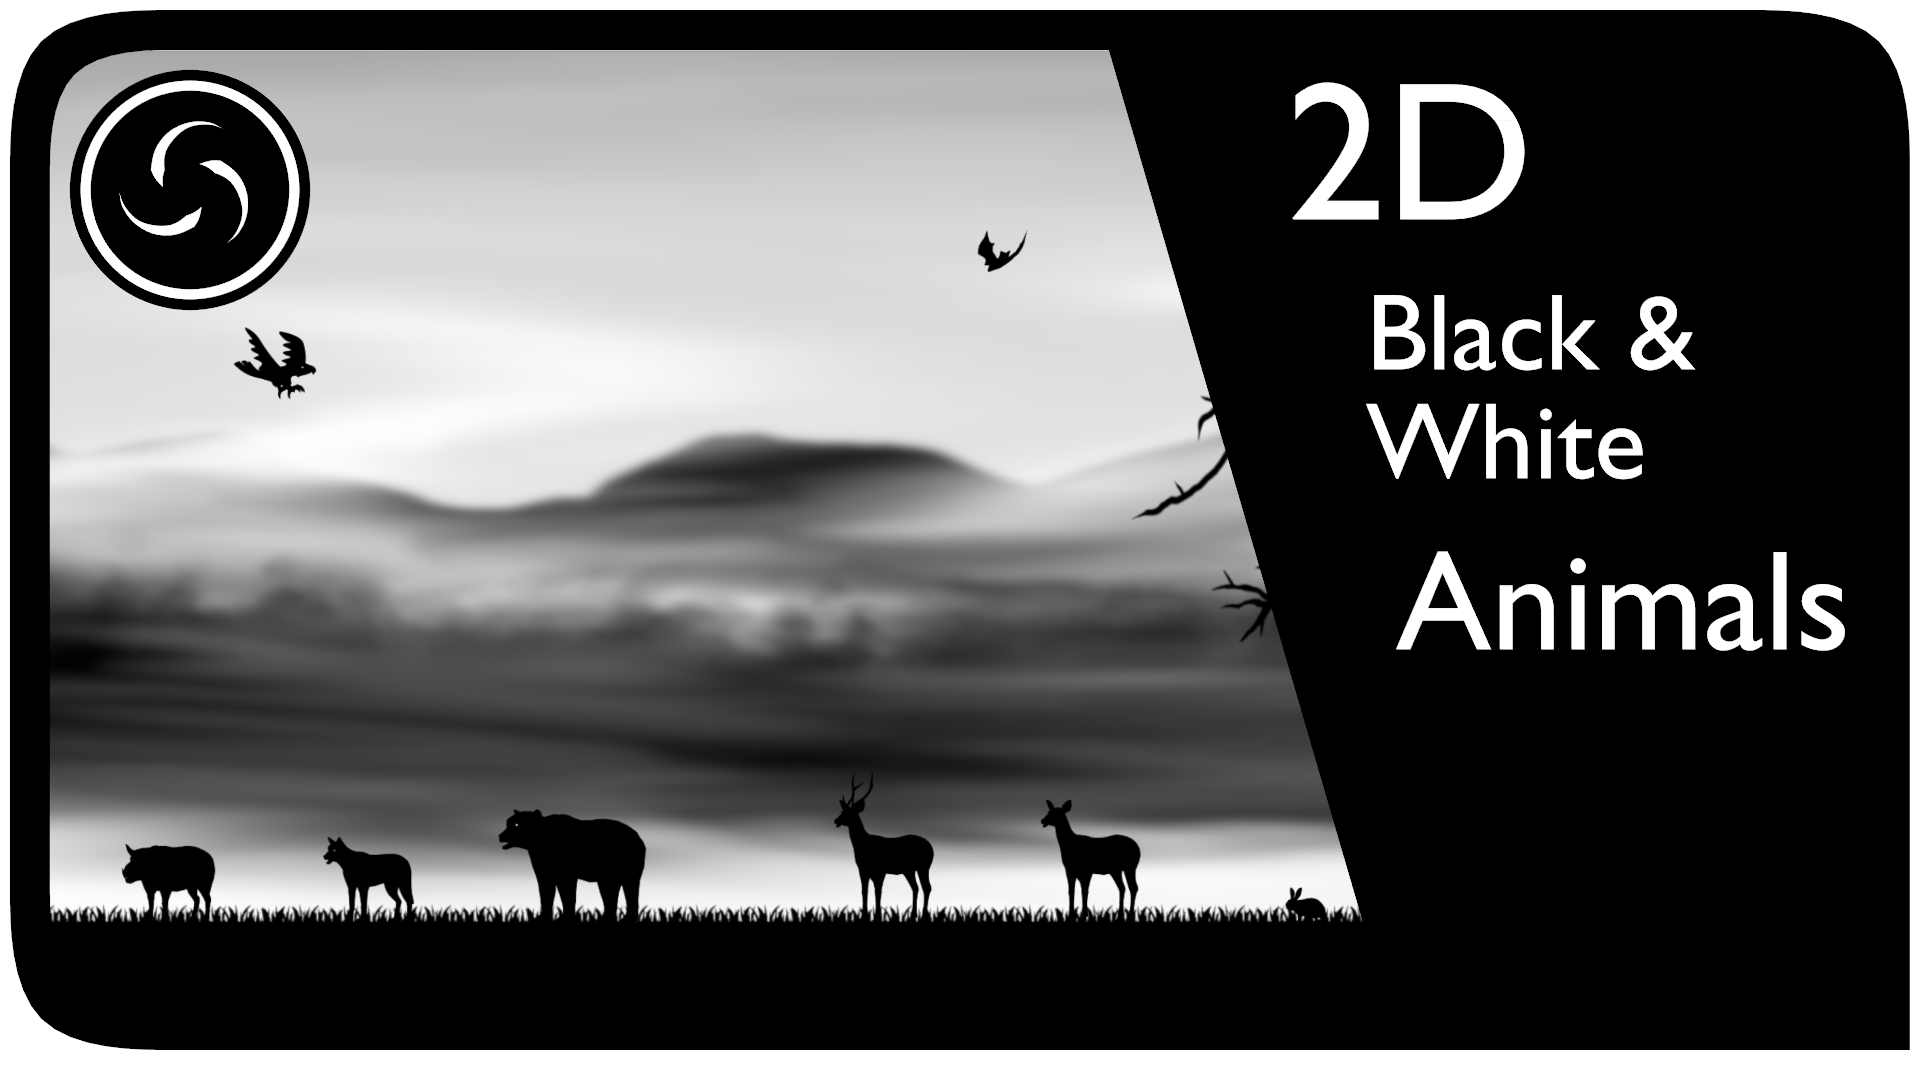 2D Black & White Animals